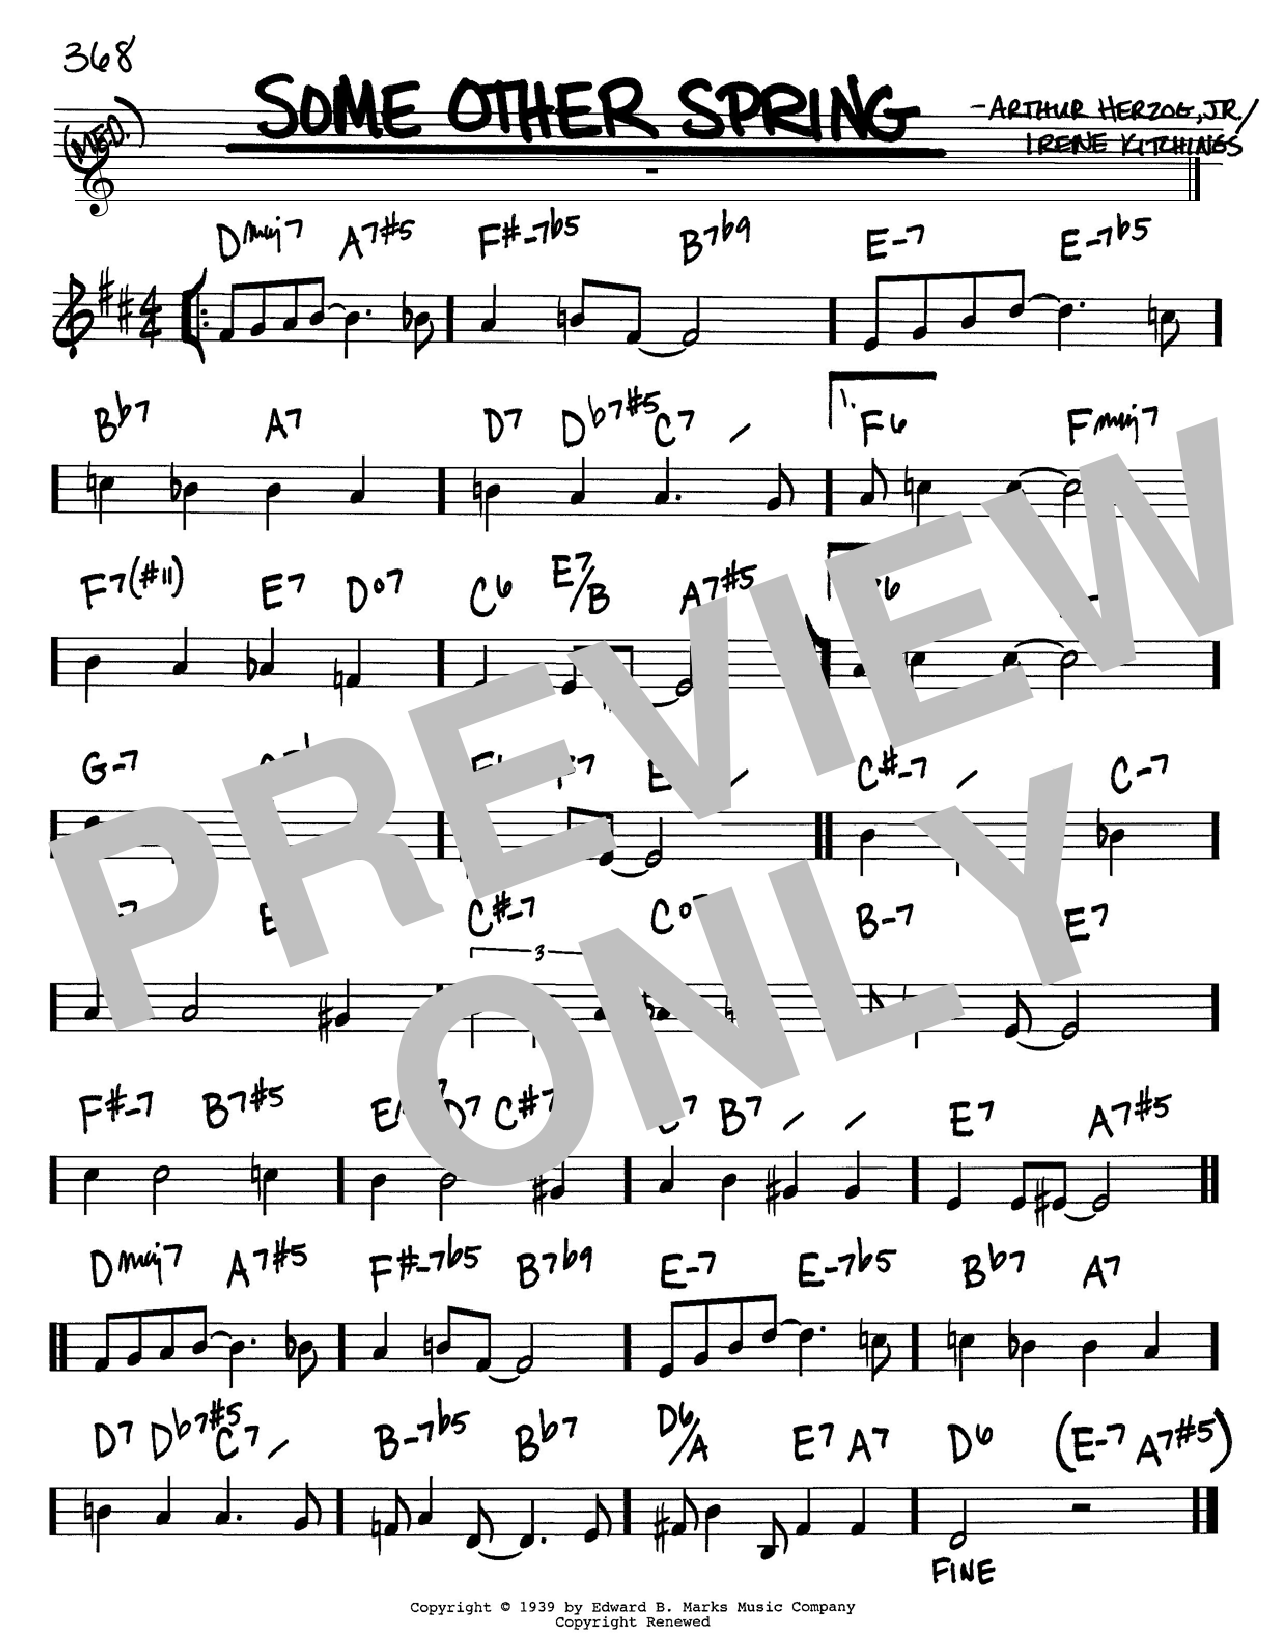 Download Arthur Herzog Jr. 'Some Other Spring' Digital Sheet Music Notes & Chords and start playing in minutes